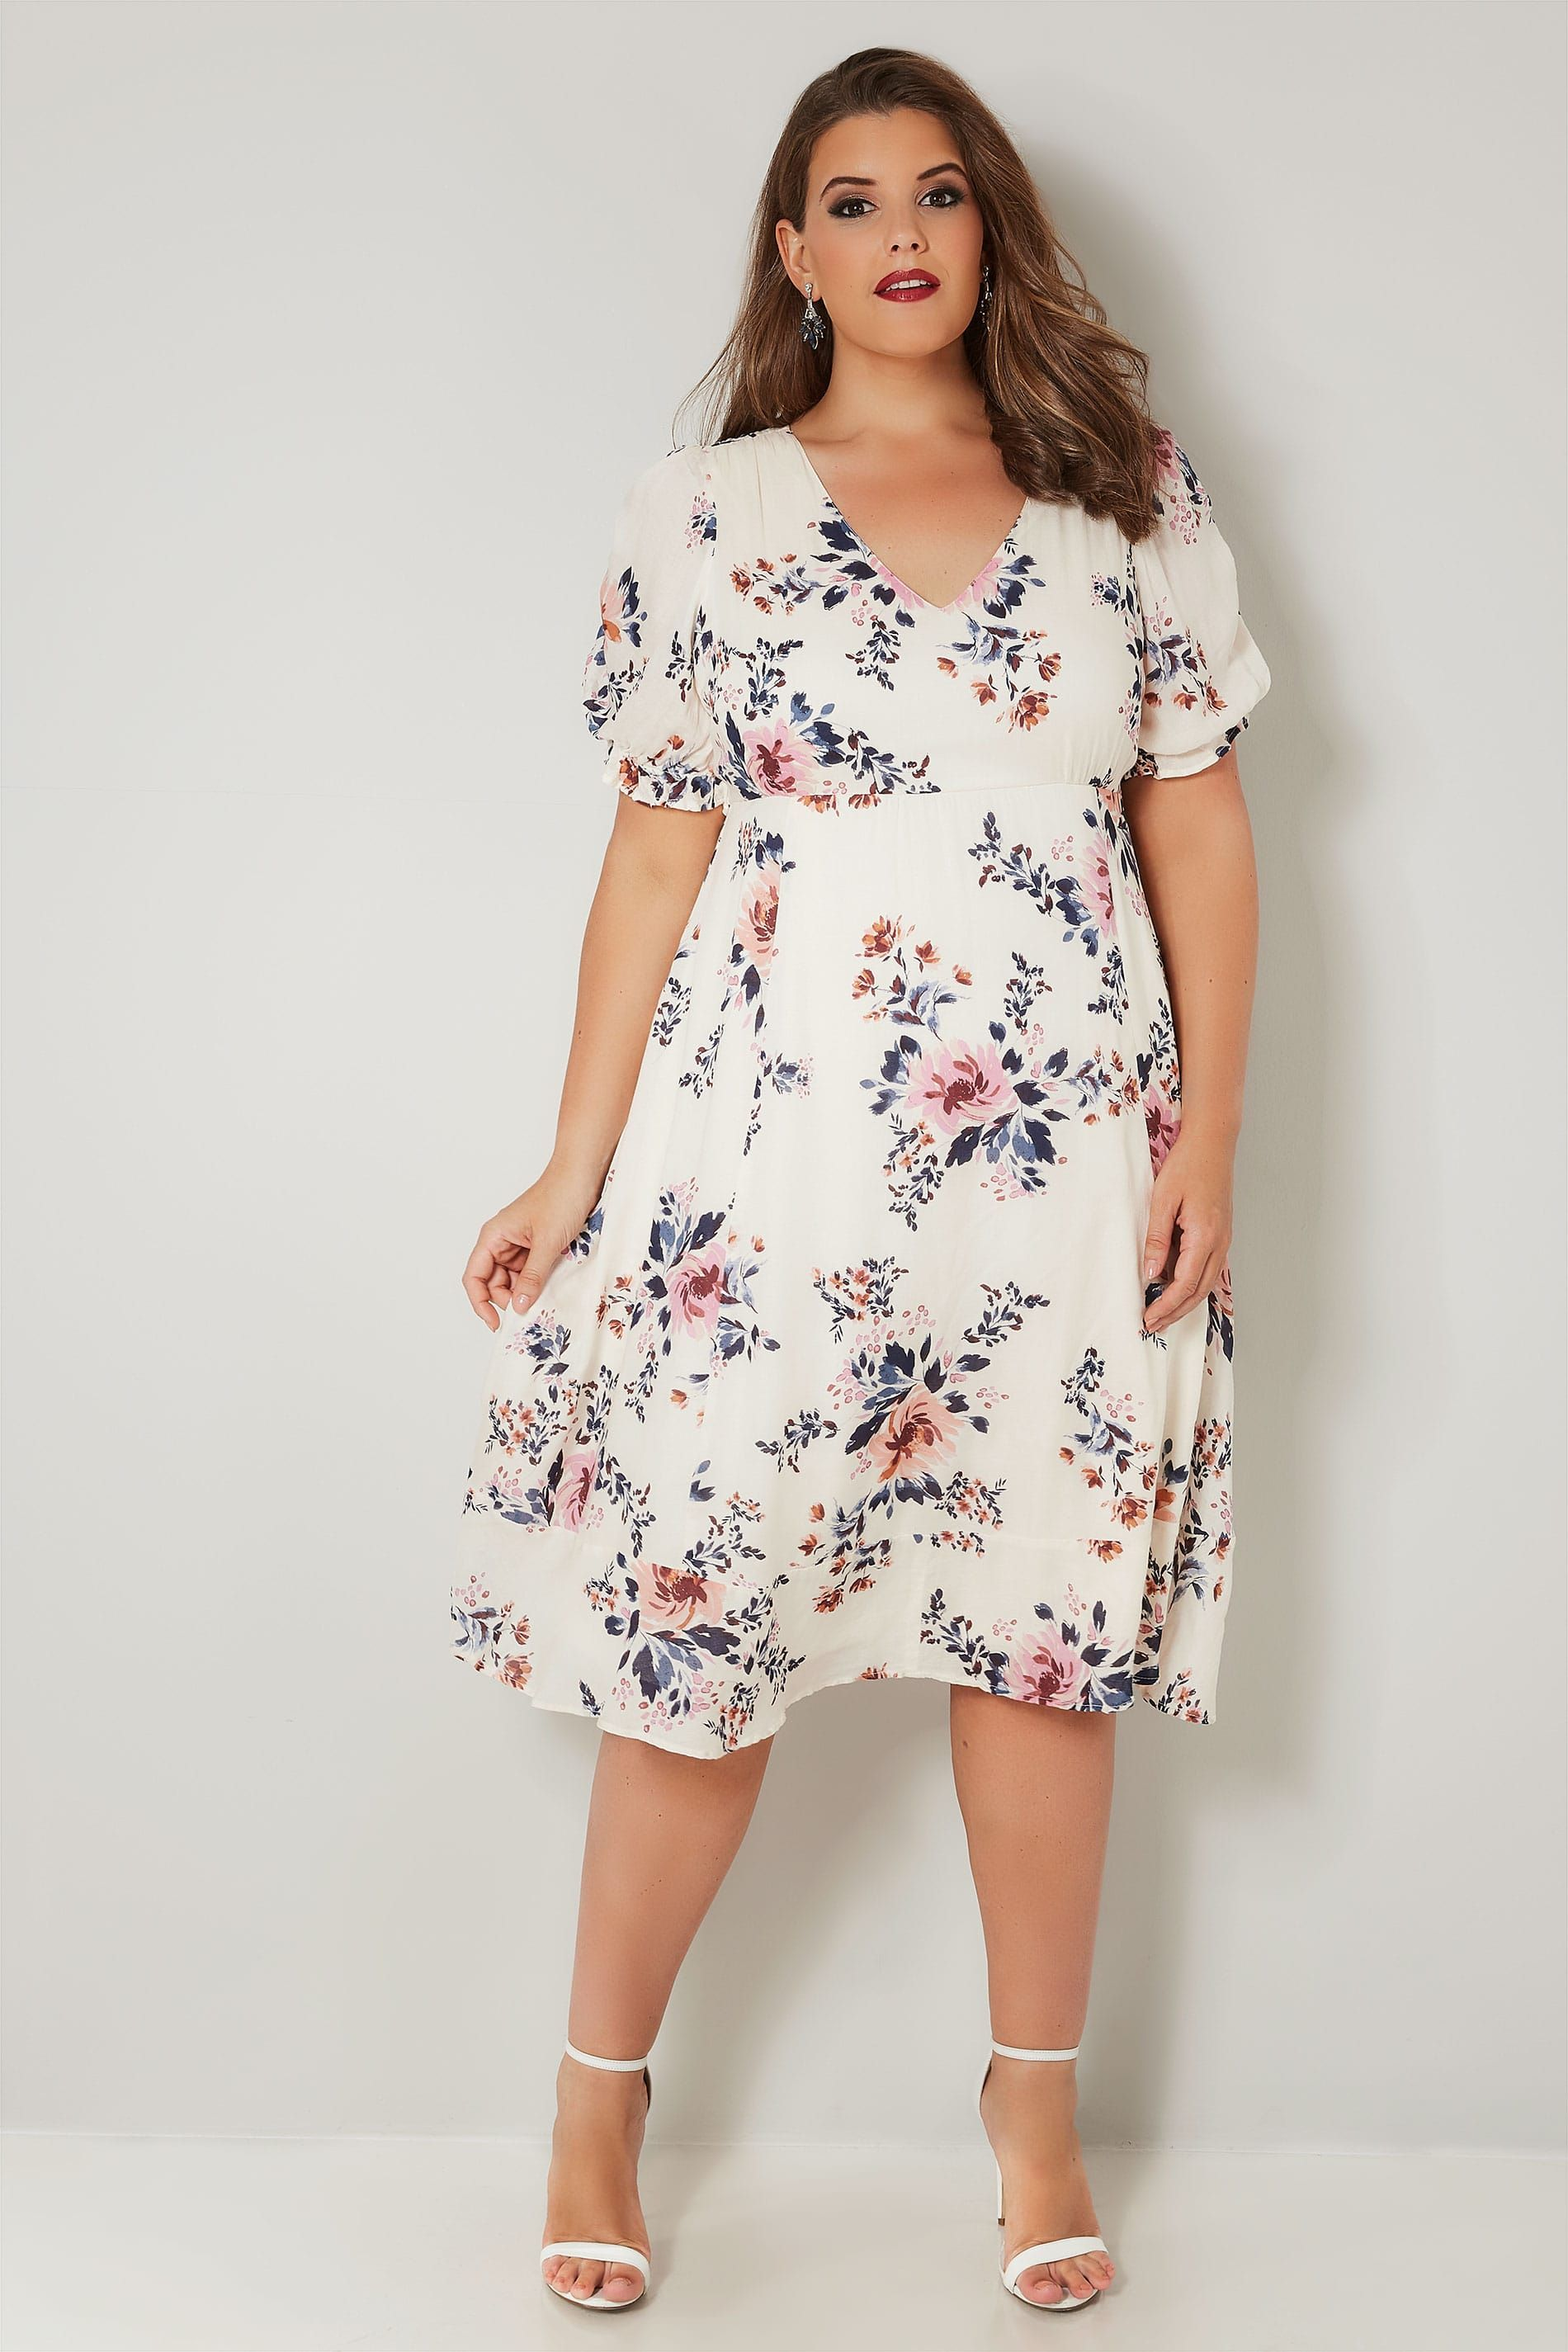 YOURS LONDON Ivory Floral Tea Dress, Plus size 16 to 32 in ...